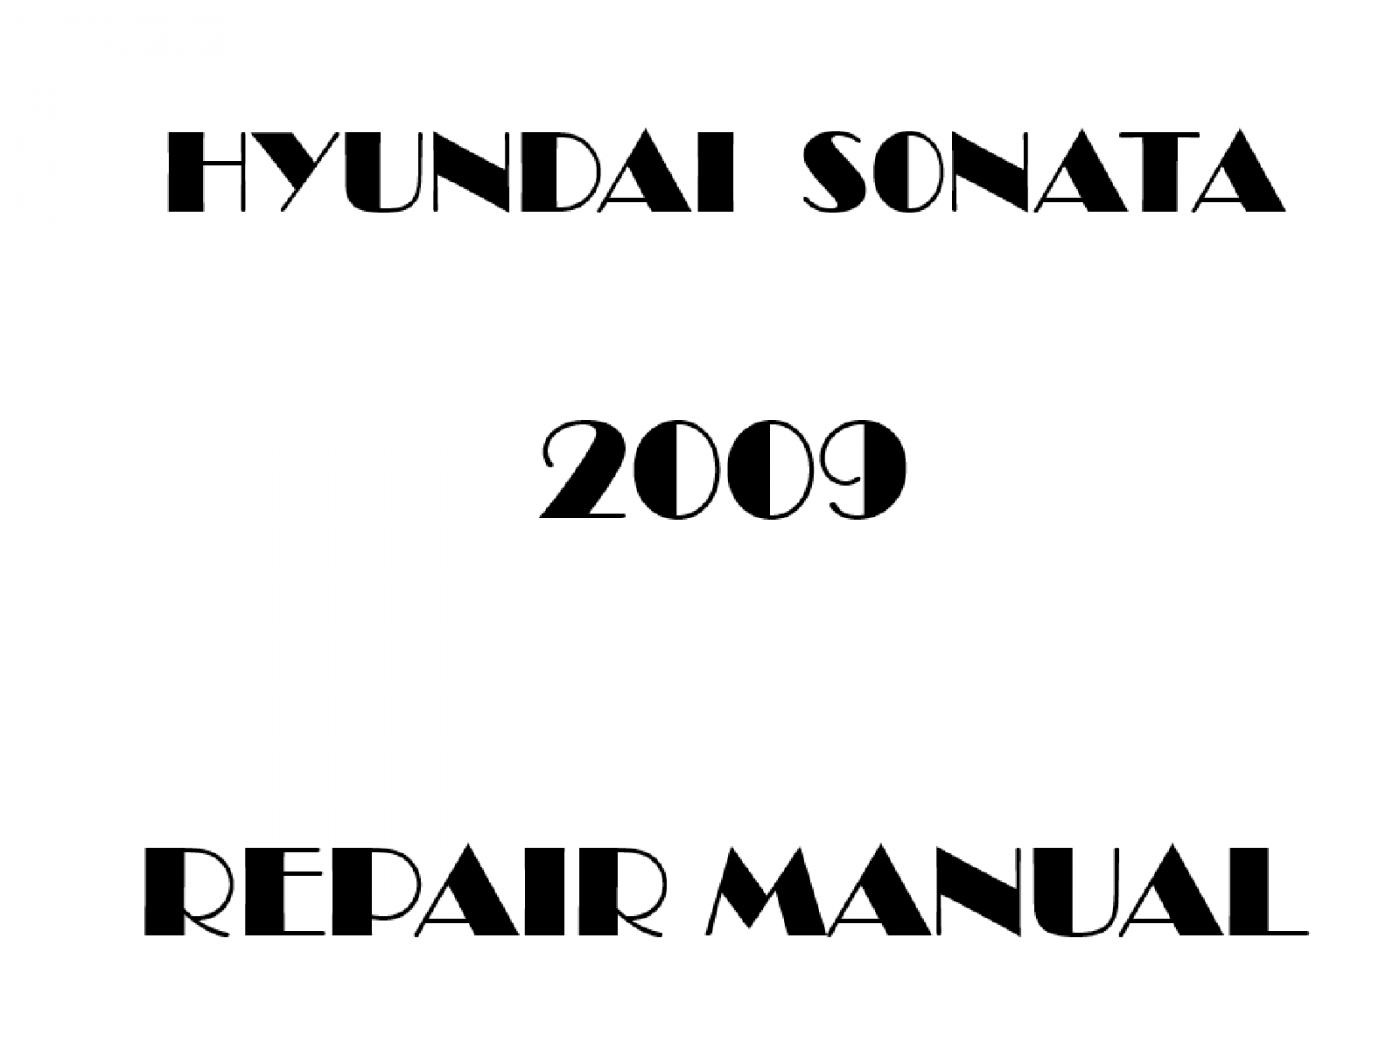 2009 Hyundai Sonata repair manual